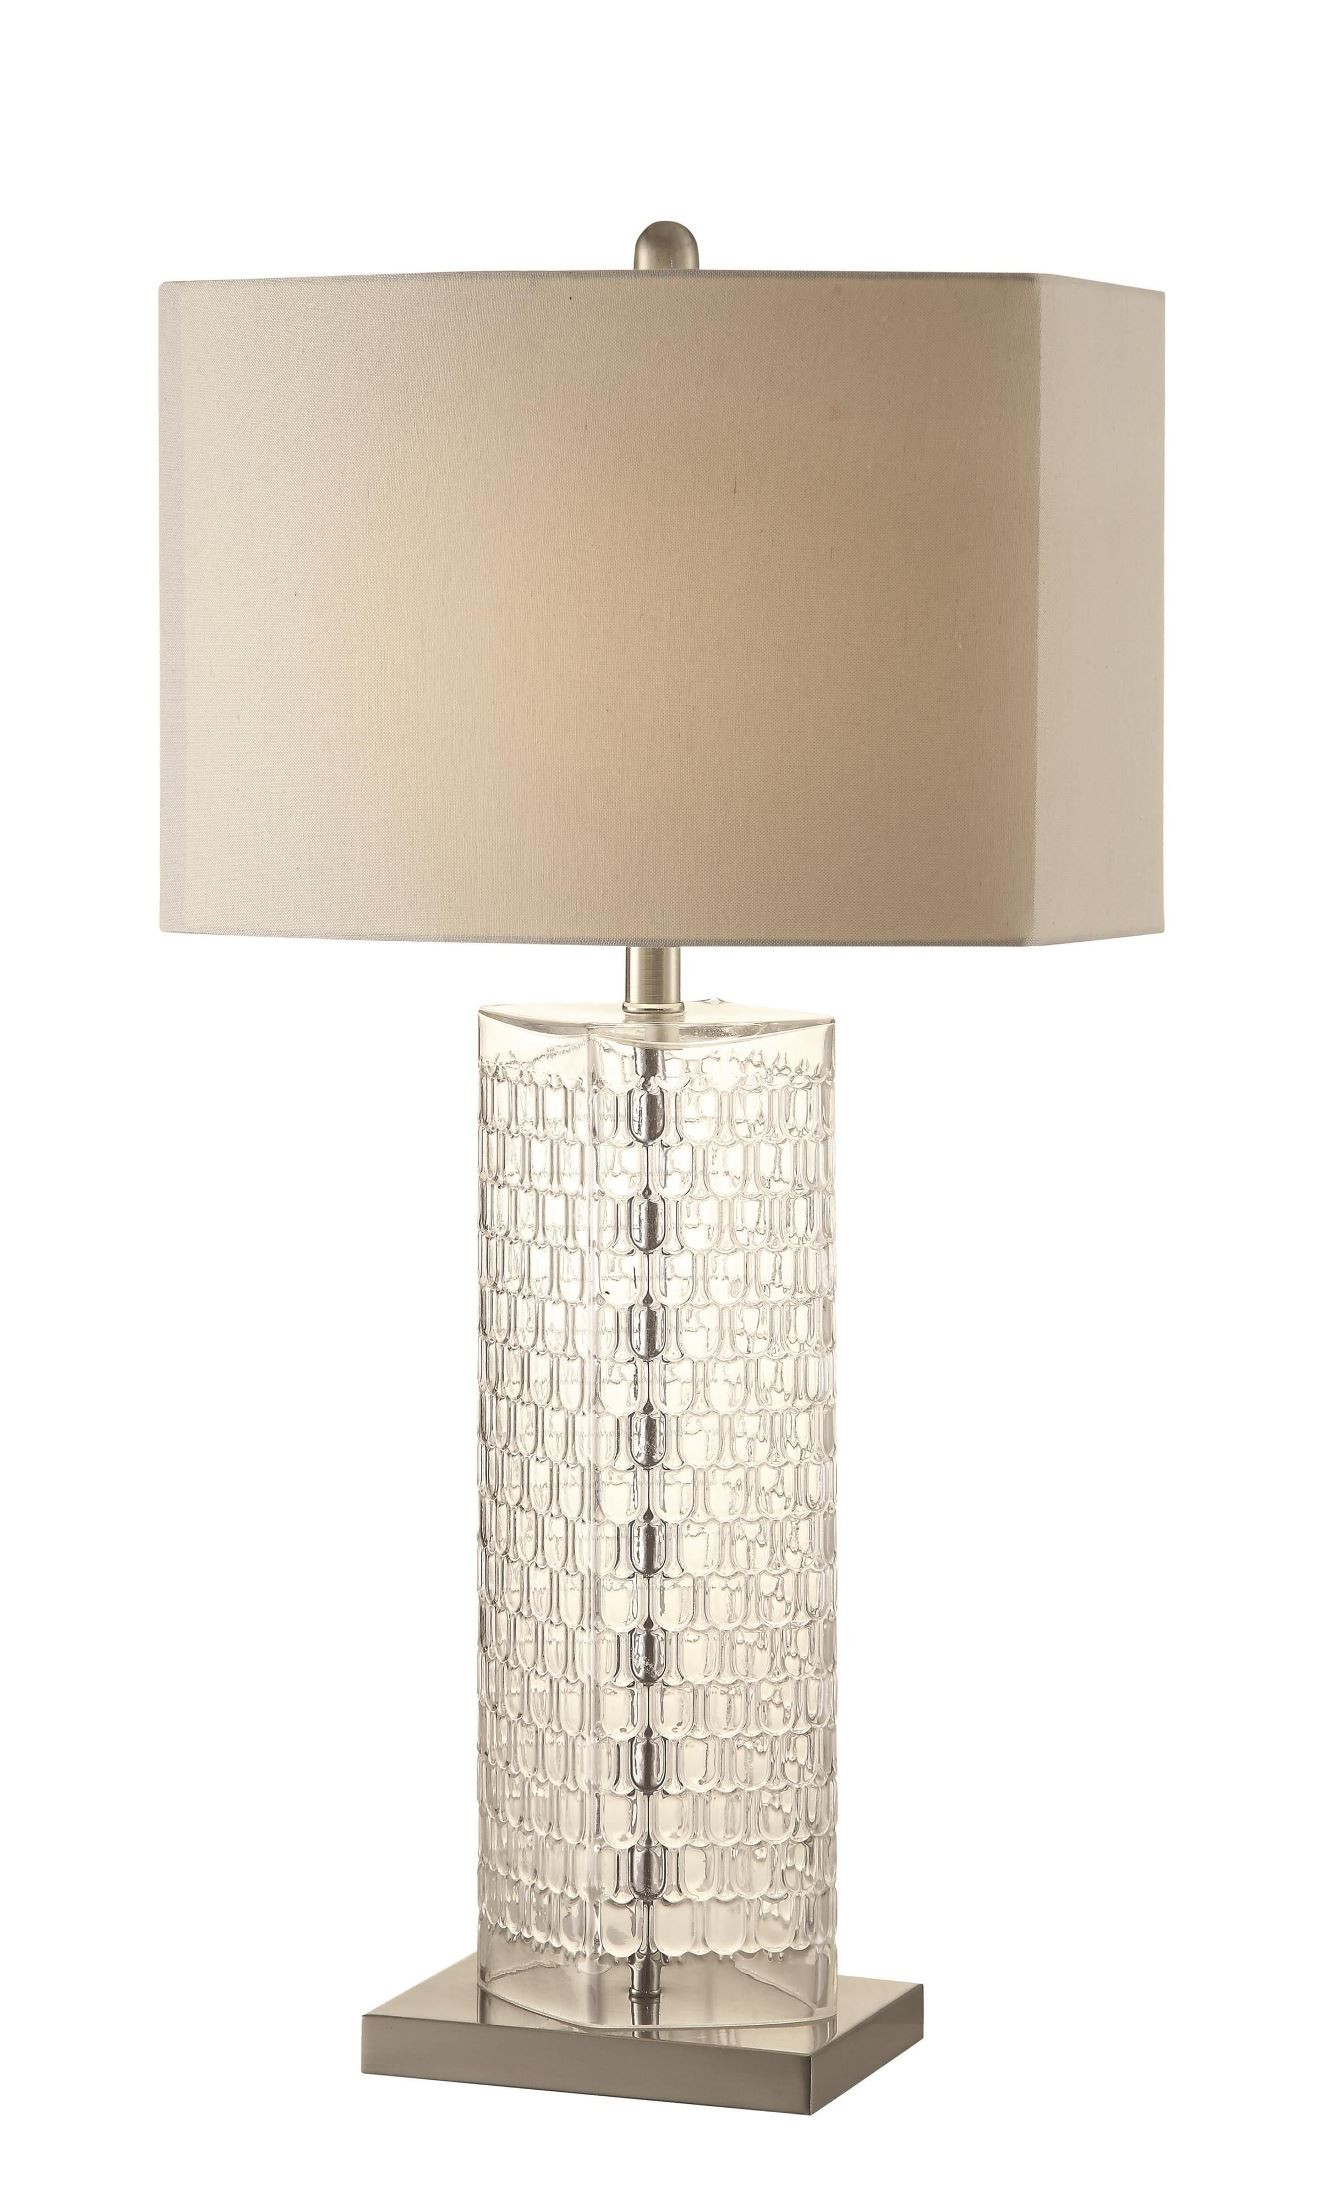 901556 Tall And Thin Clear Glass Table Lamp From Coaster